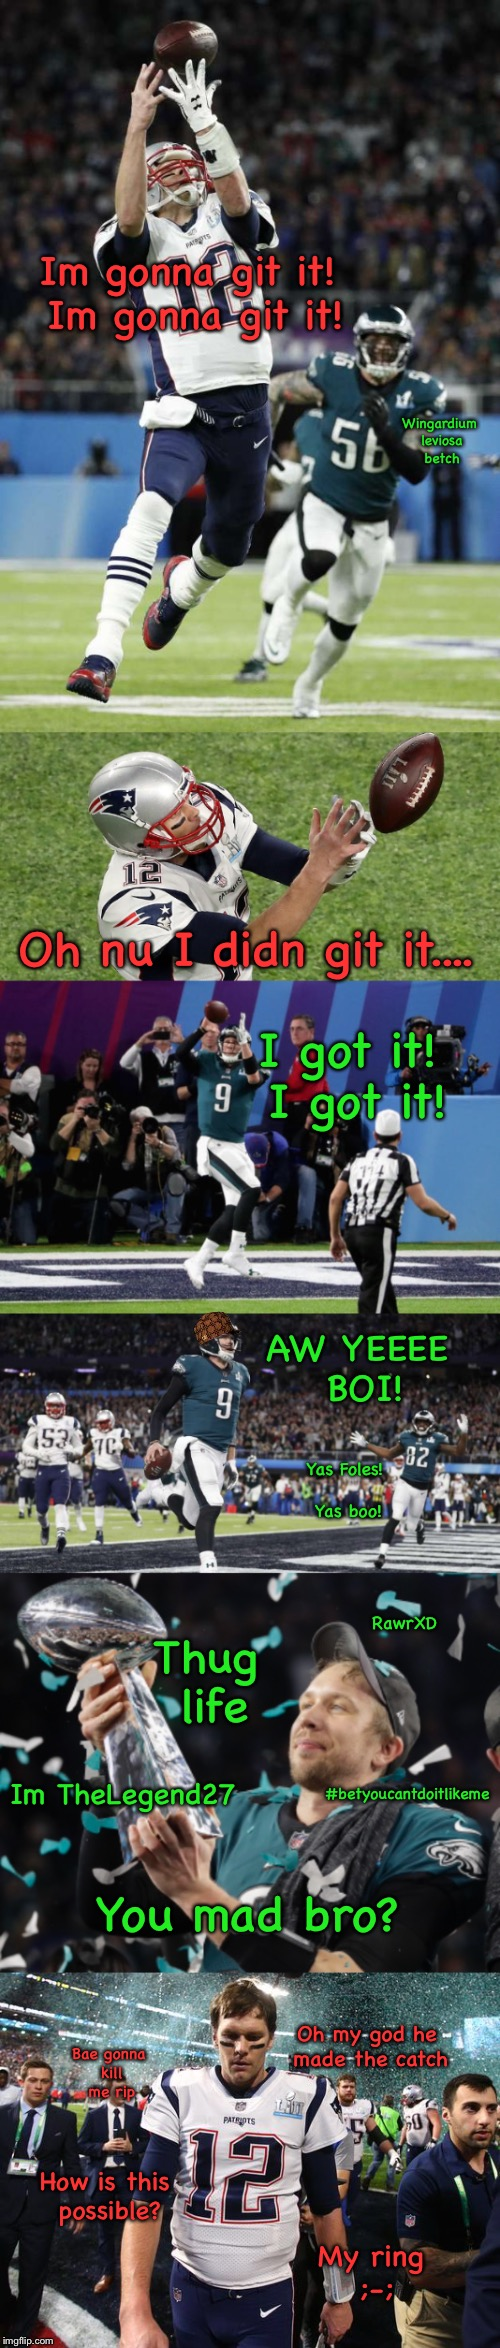 #betyoucantdoitlikeFoles Brady | Im gonna git it! Im gonna git it! Oh nu I didn git it.... I got it! I got it! AW YEEEE BOI! You mad bro? Oh my god he made the catch How is  | image tagged in bet you cant do it like me,super bowl lii,super bowl 52,nick foles,tom brady,tom brady sad | made w/ Imgflip meme maker